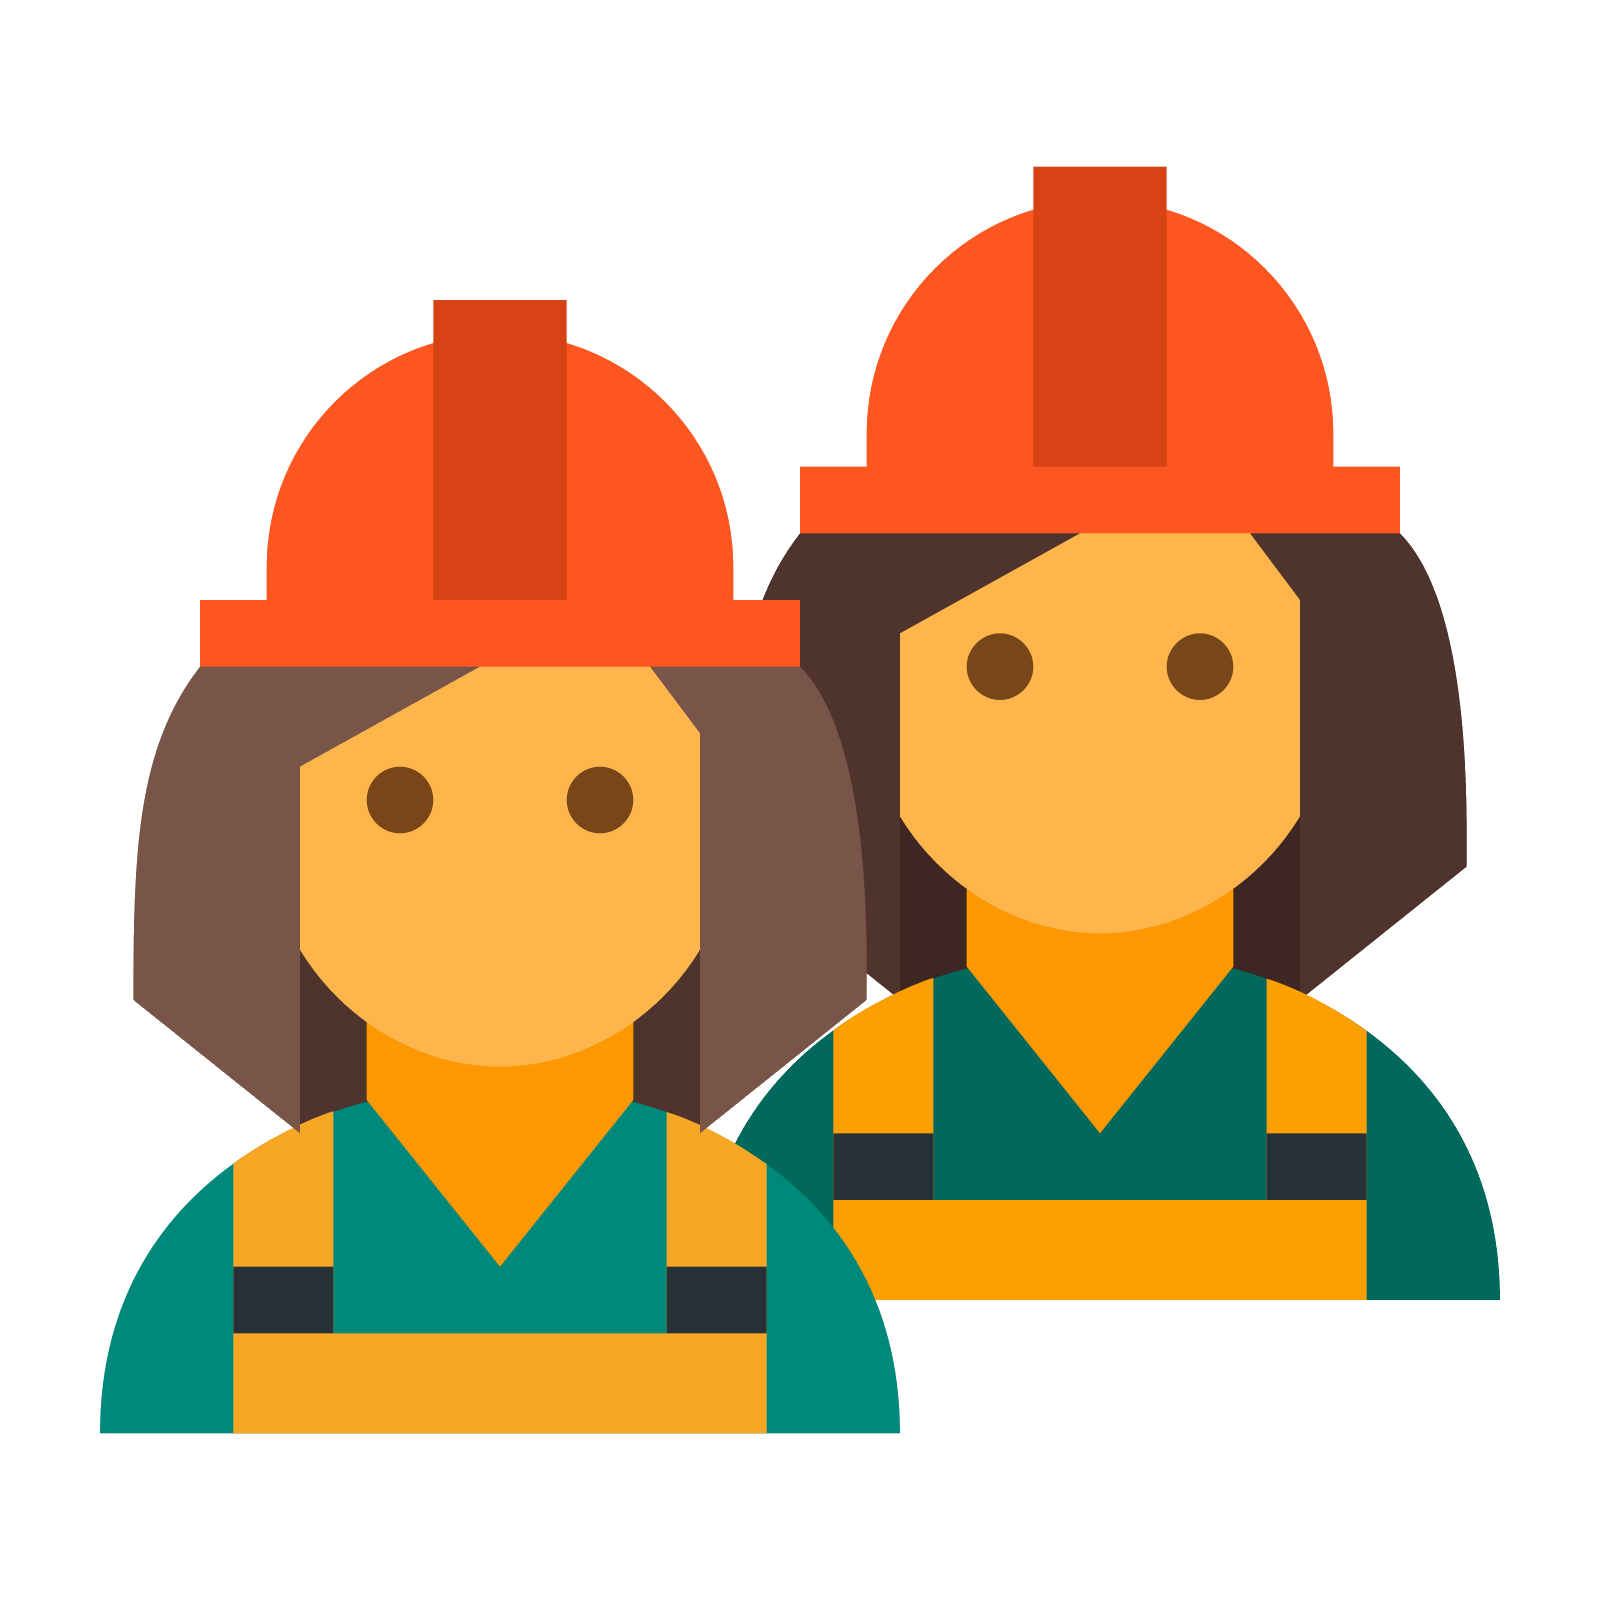 Contractor clipart transparent. Construction workers icon free